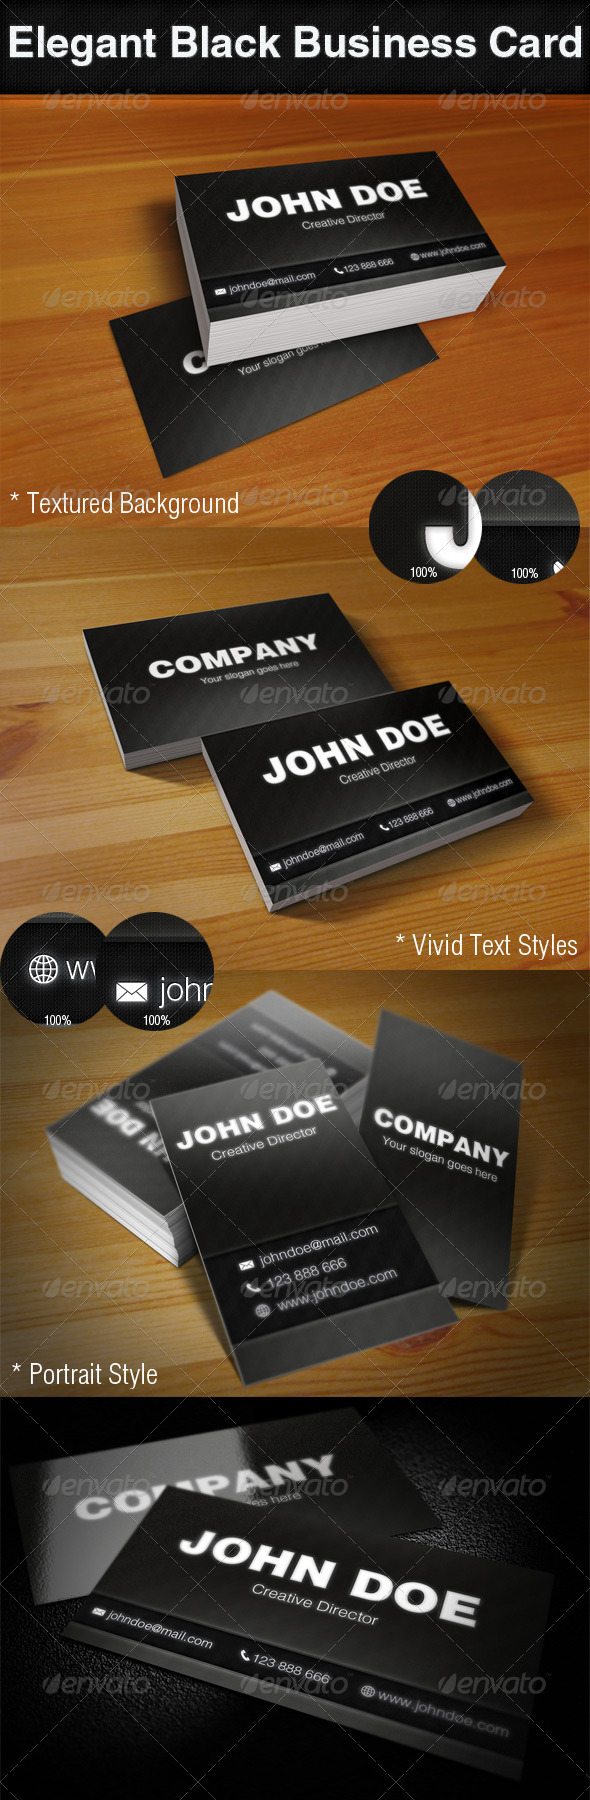 Elegant Black Business Cards - Creative Business Cards